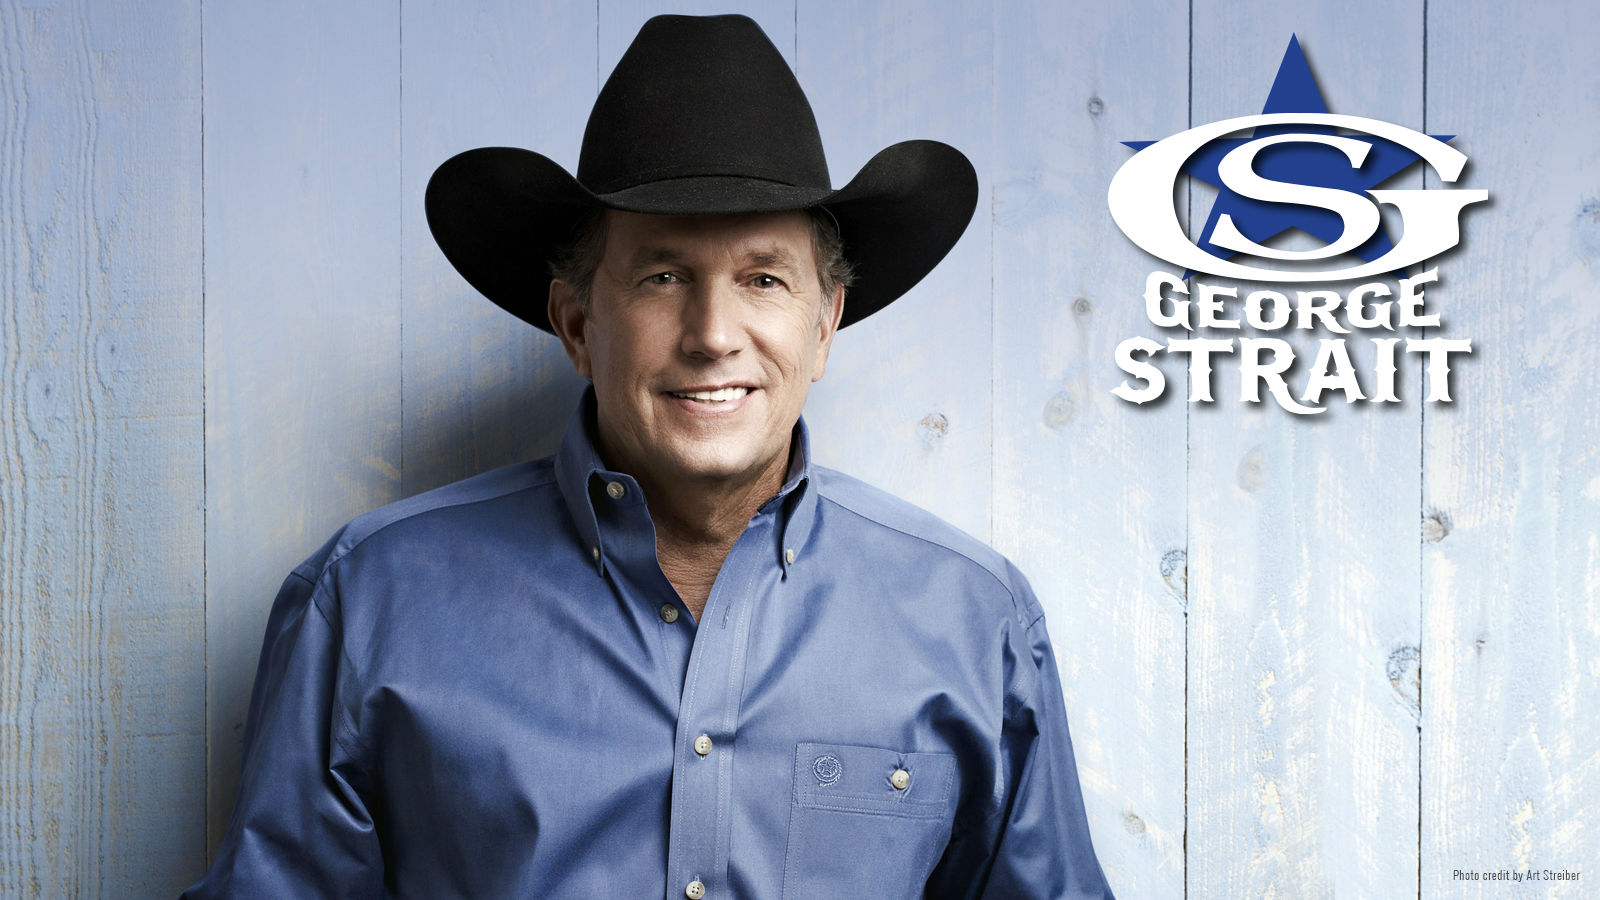 George Strait Net Worth